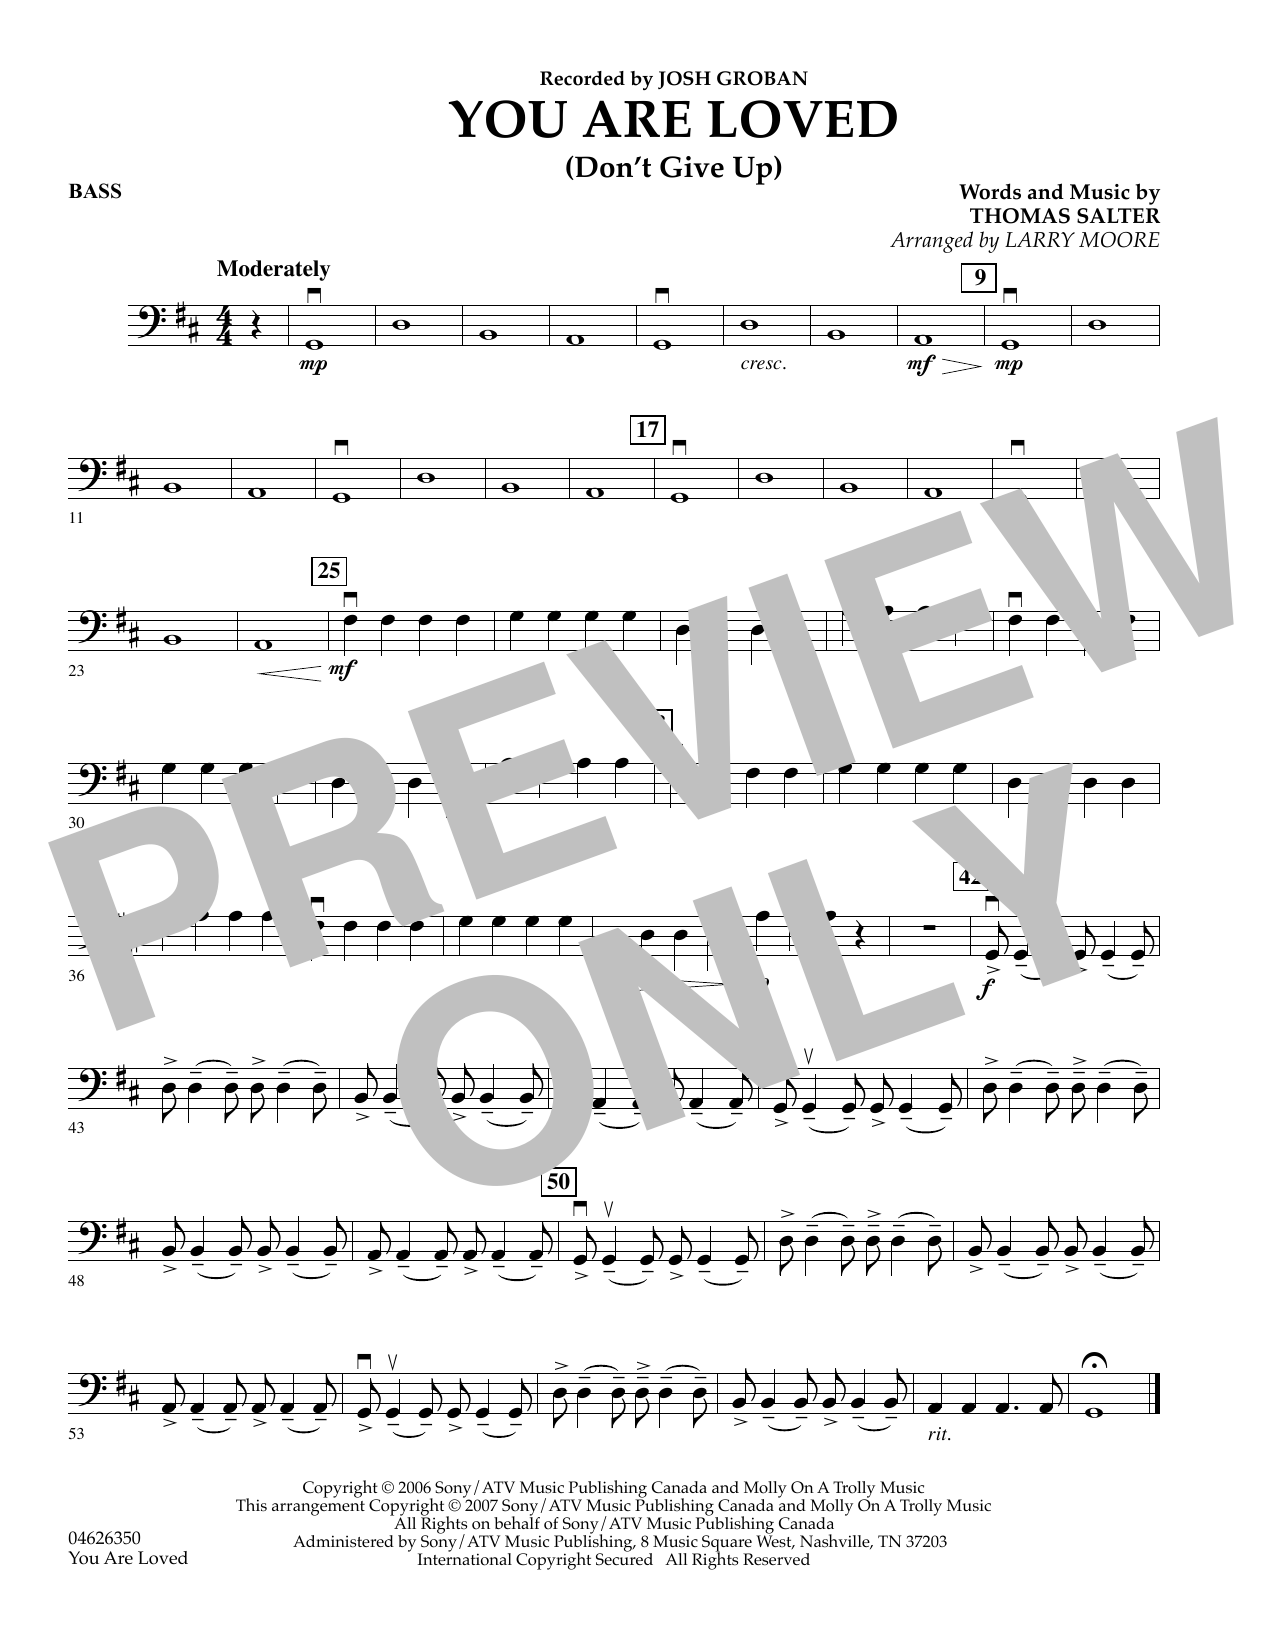 You Are Loved (Don't Give Up) - Bass sheet music